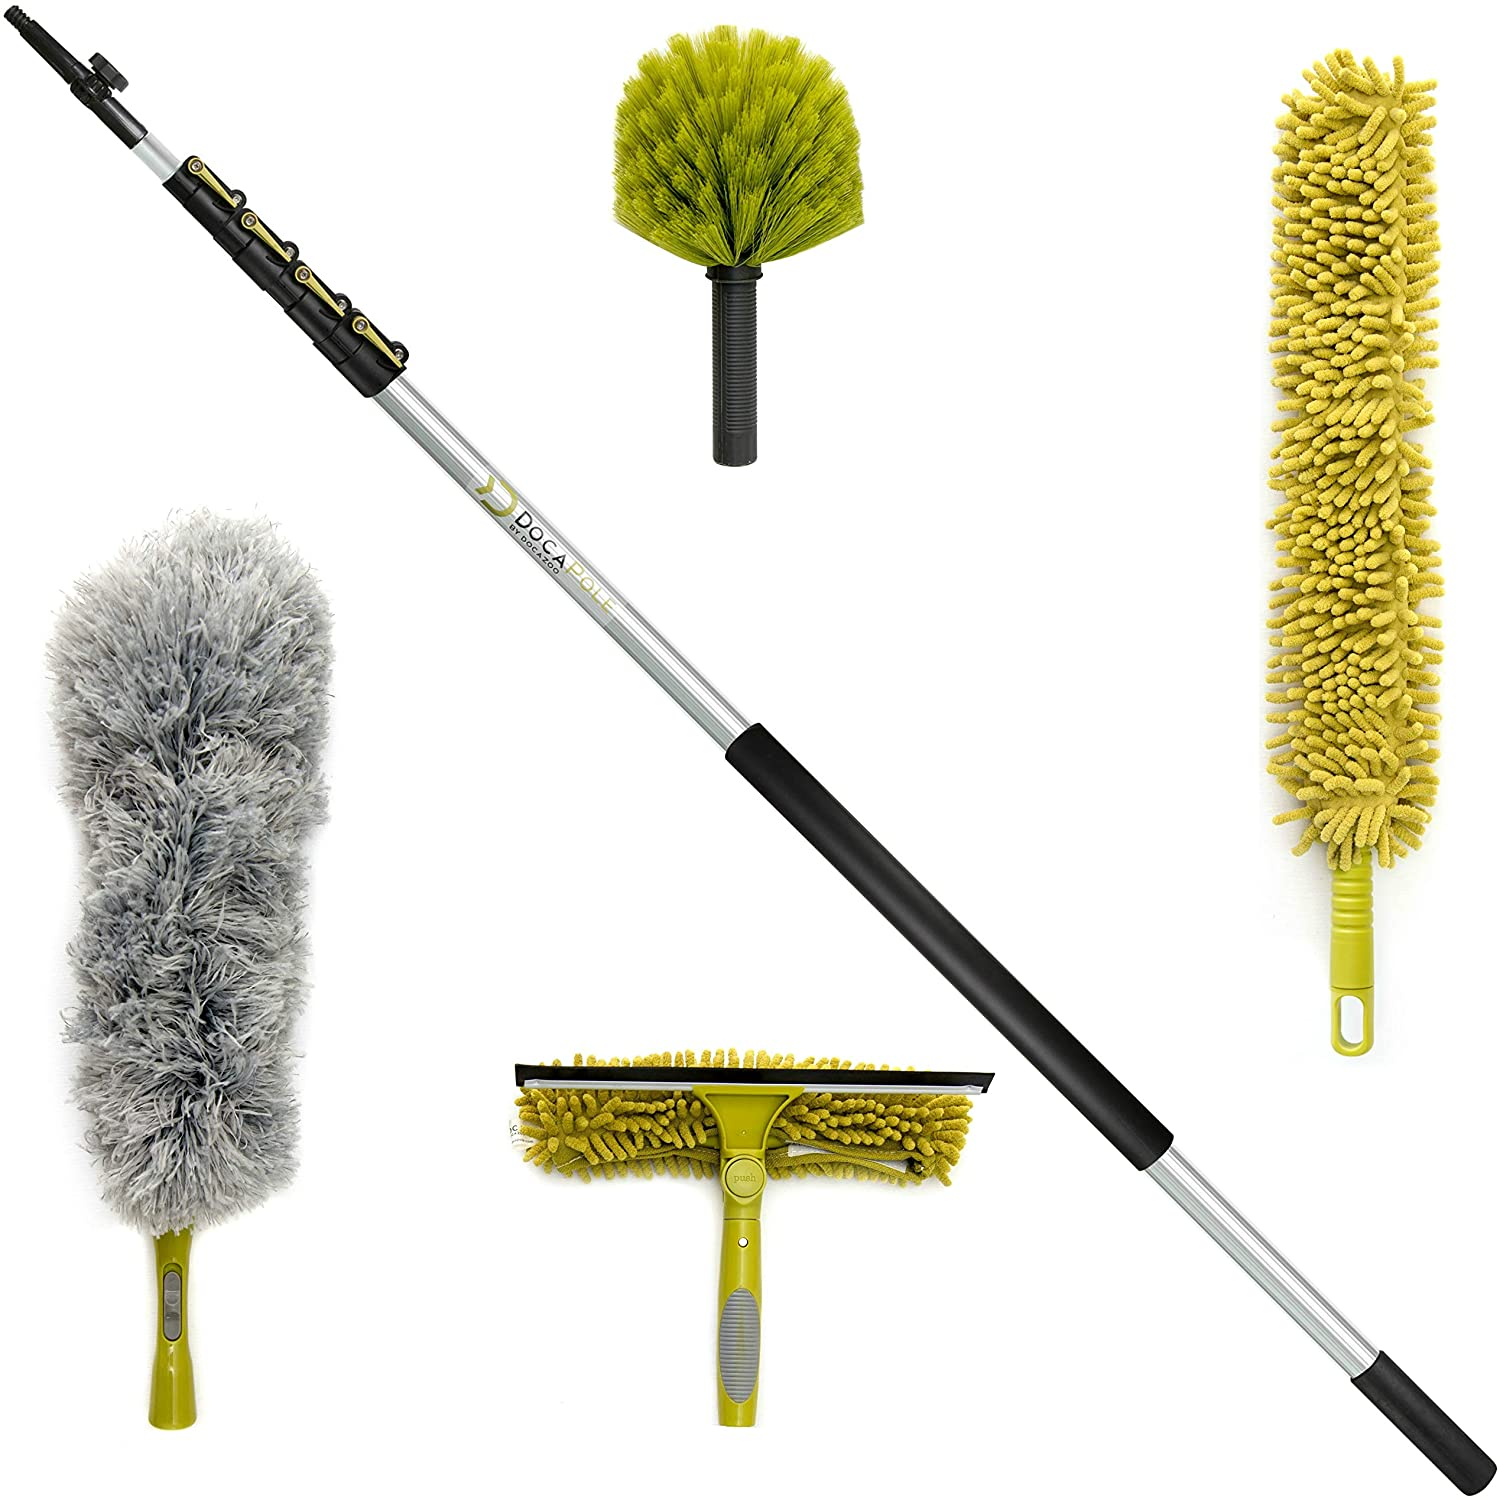 DocaPole Cleaning Kit with 24 Foot Extension Pole // Includes 3 Dusting Attachments + 1 Window Squeegee & Washer // Cobweb Duster // Microfiber Feather Duster // Ceiling Fan Duster & Cleaner